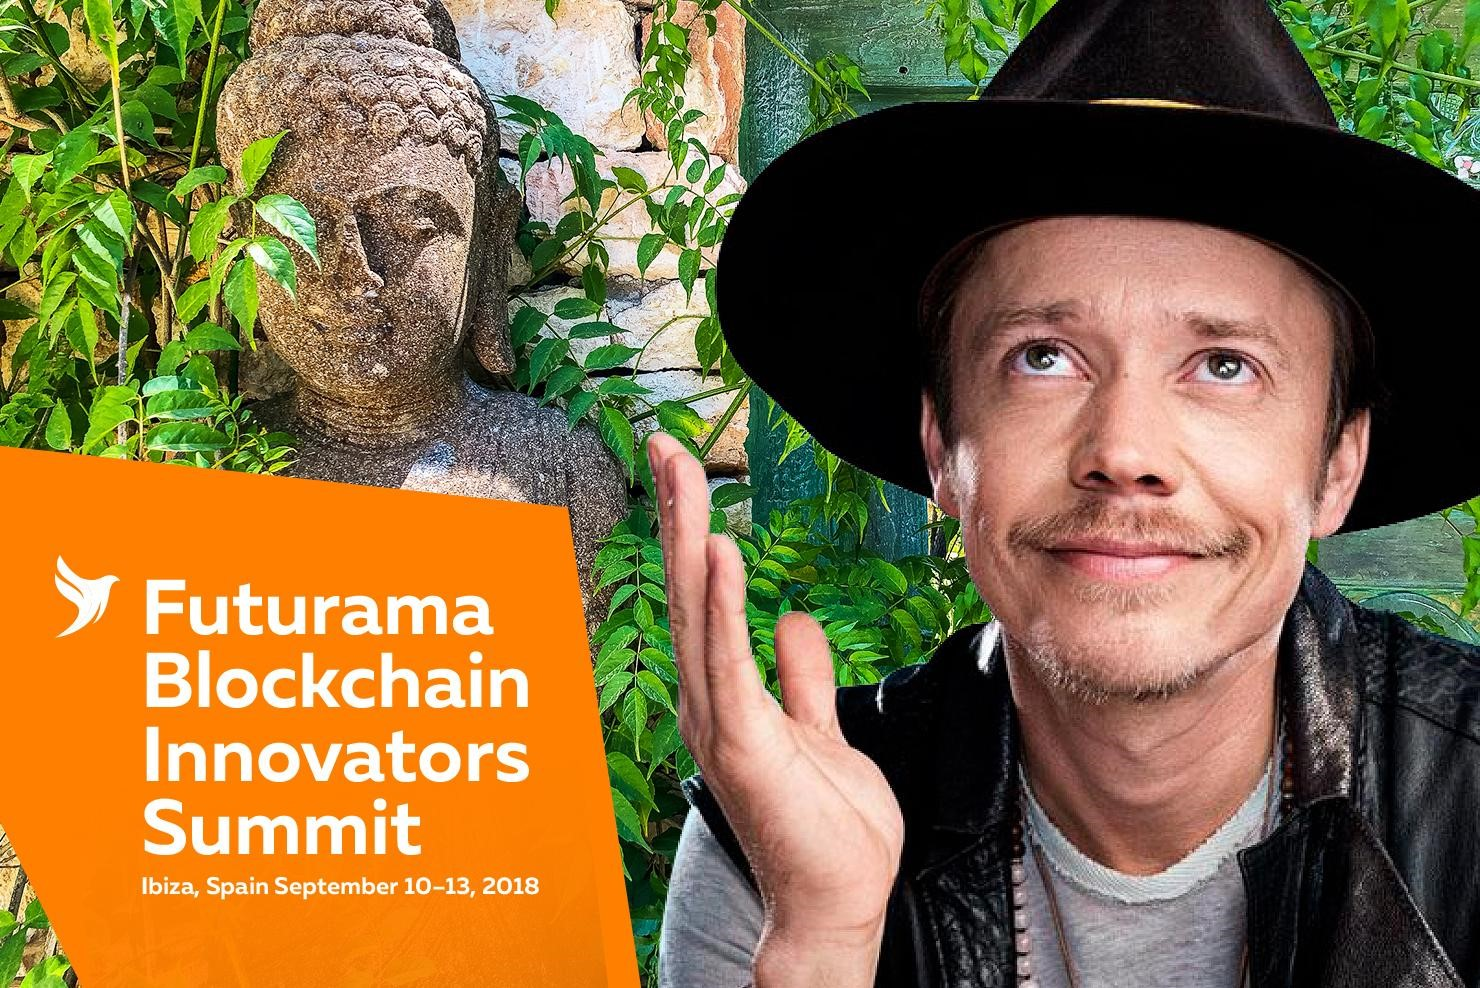 Futurama Blockchain Innovators Summit | InsideCrypto Today